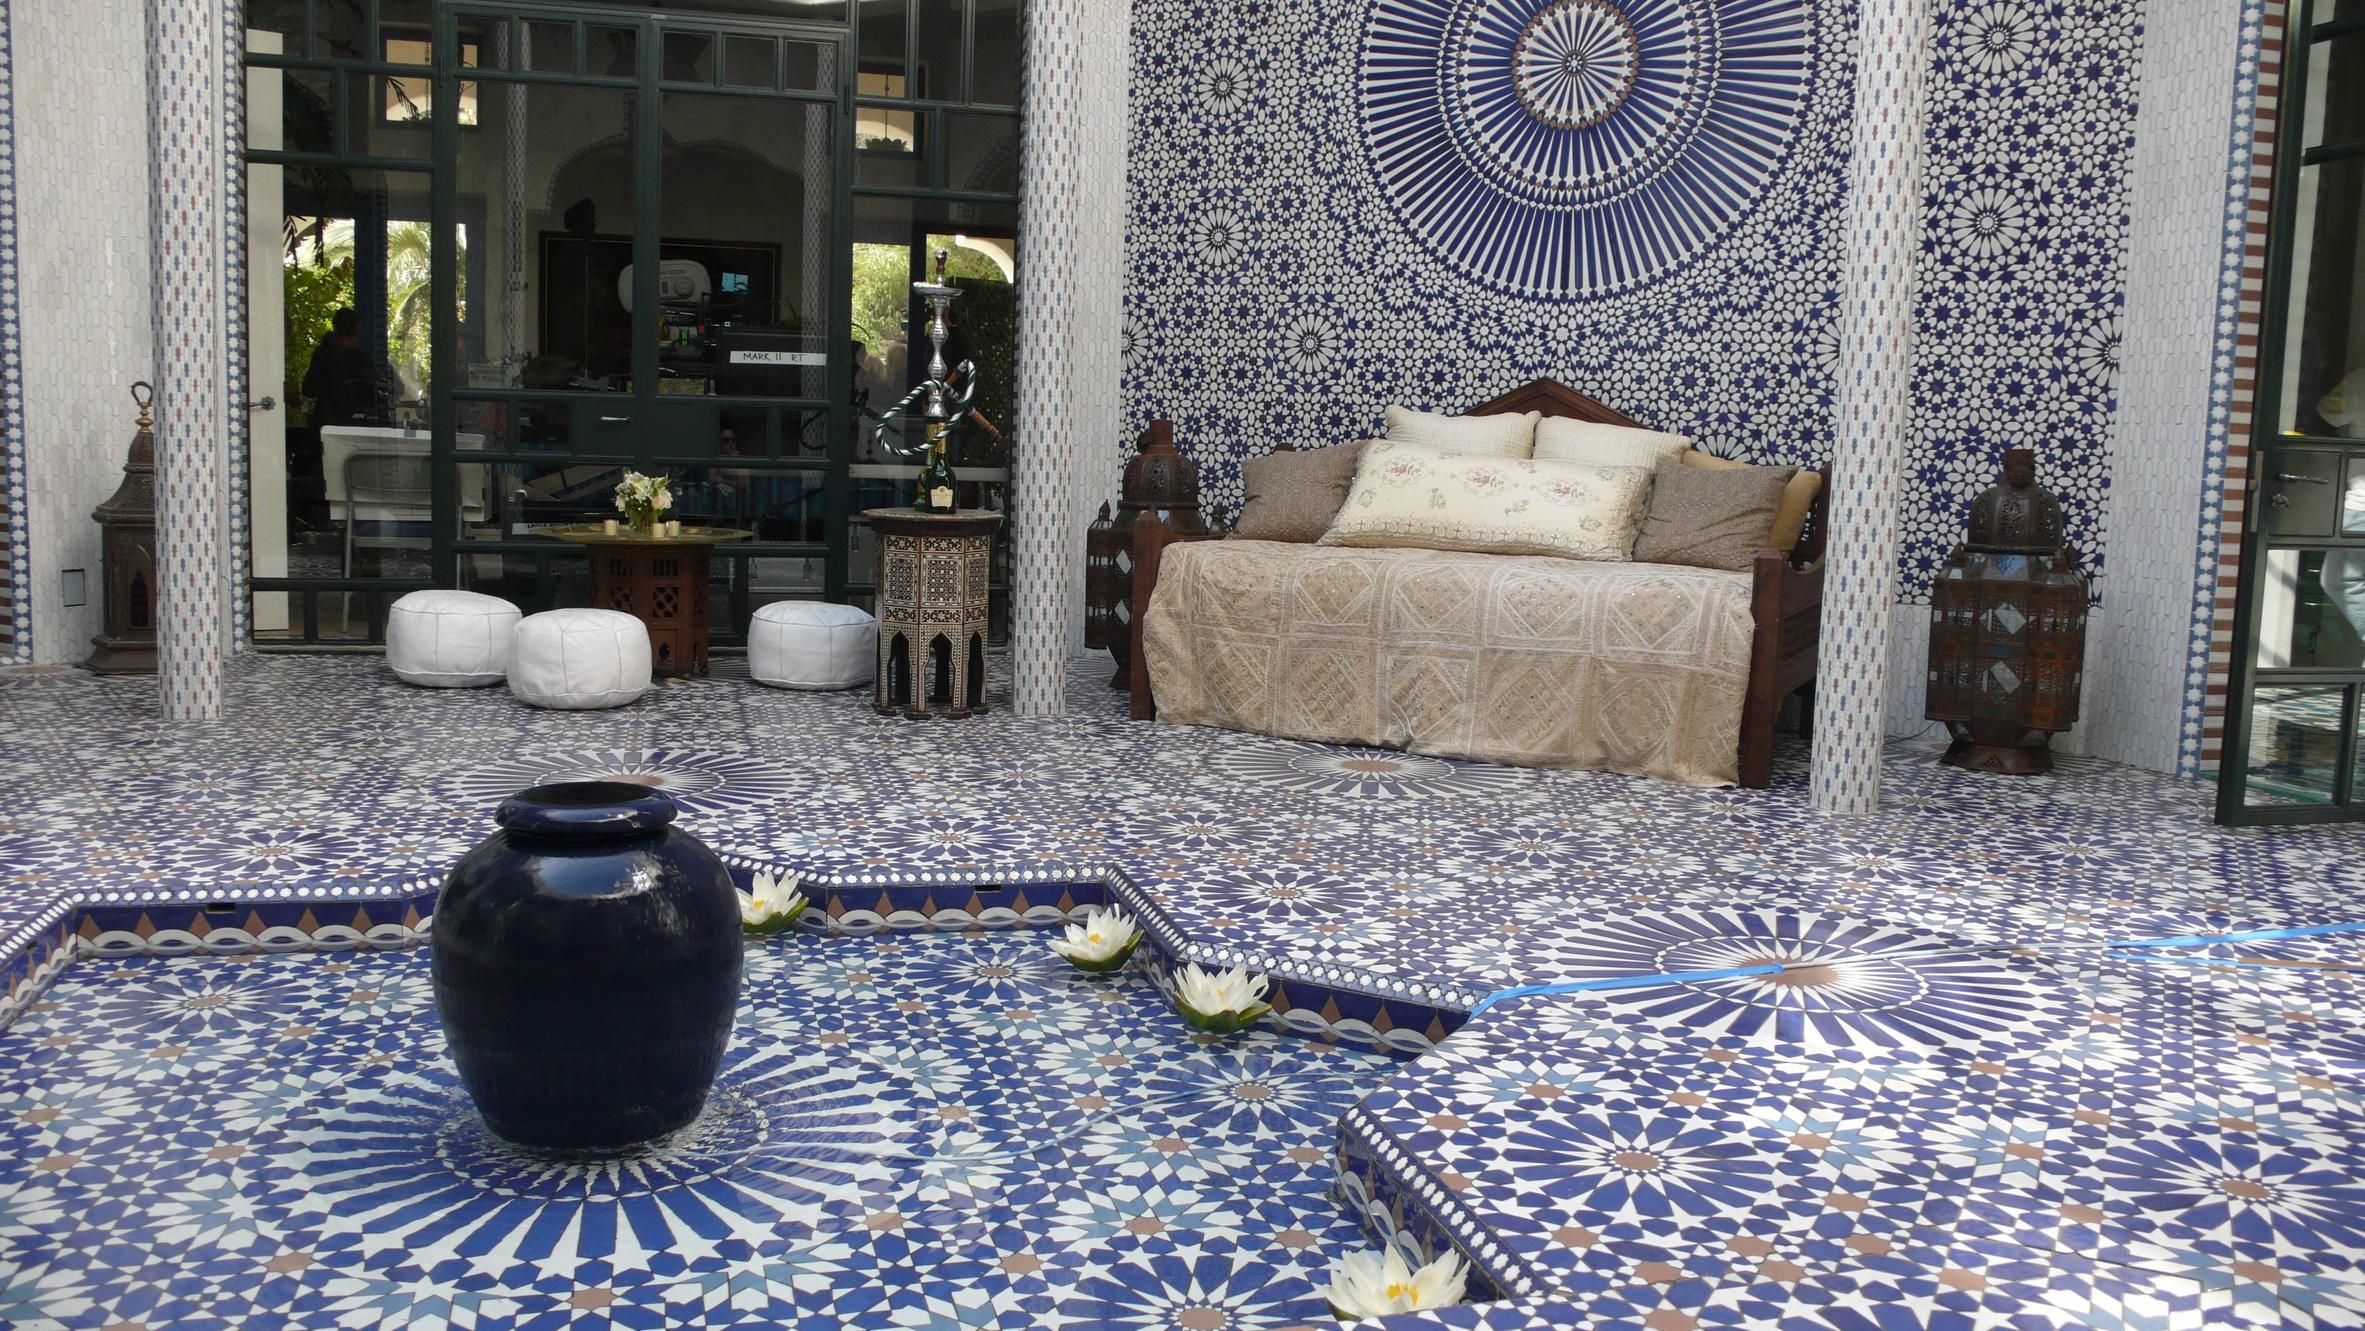 outdoor lounge area with fountain and moroccan mosaics | moroccan